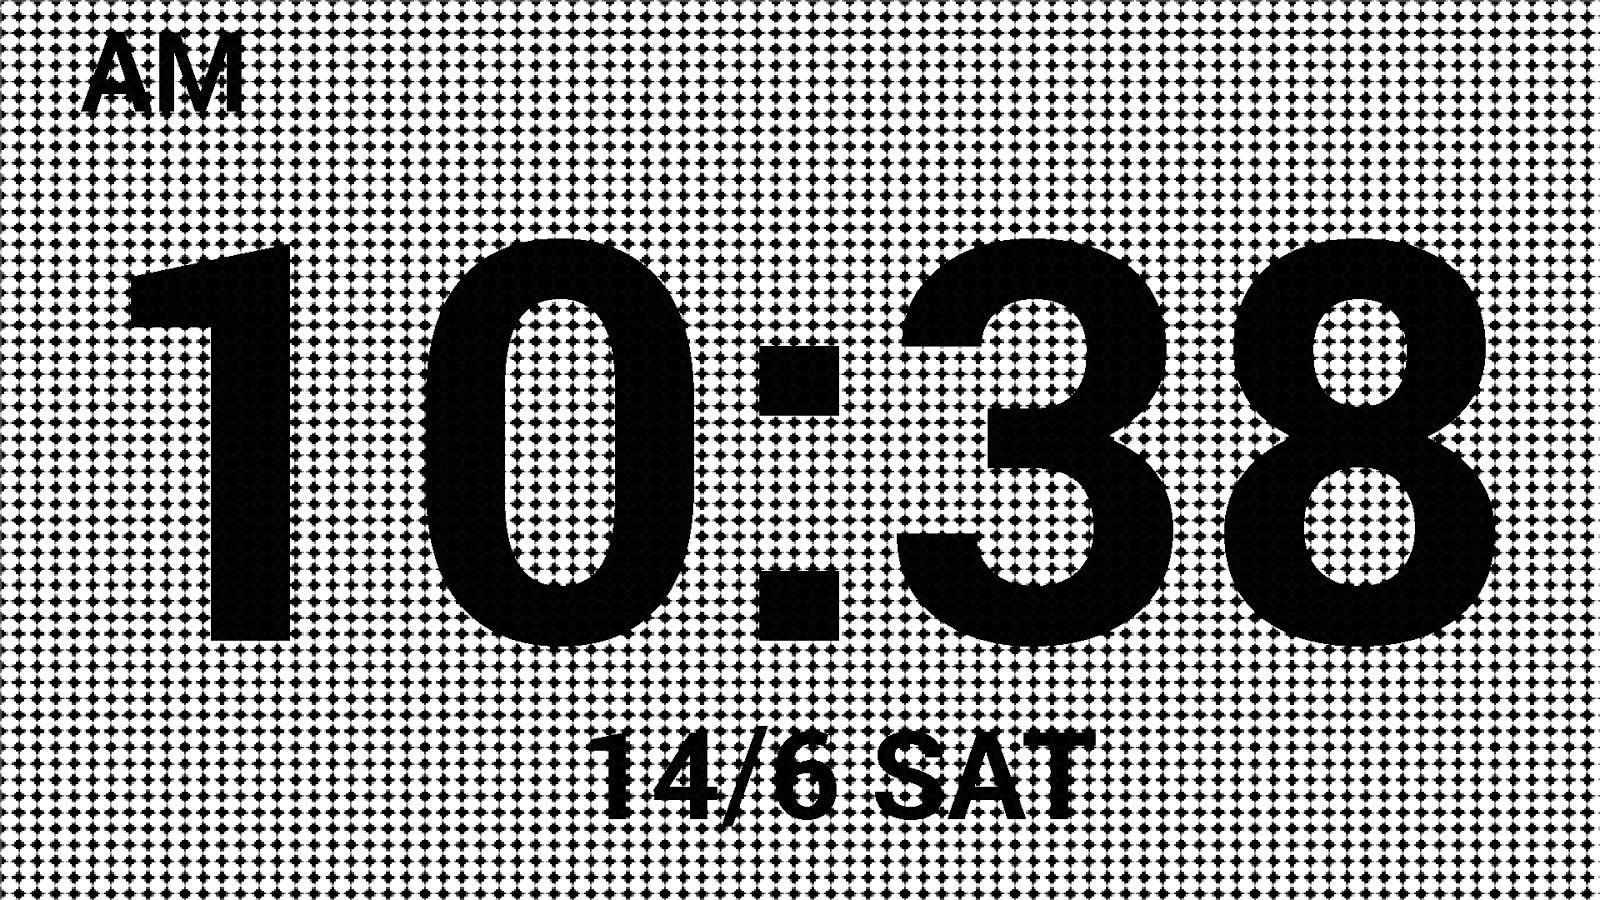 Image result for digital clock wallpaper white